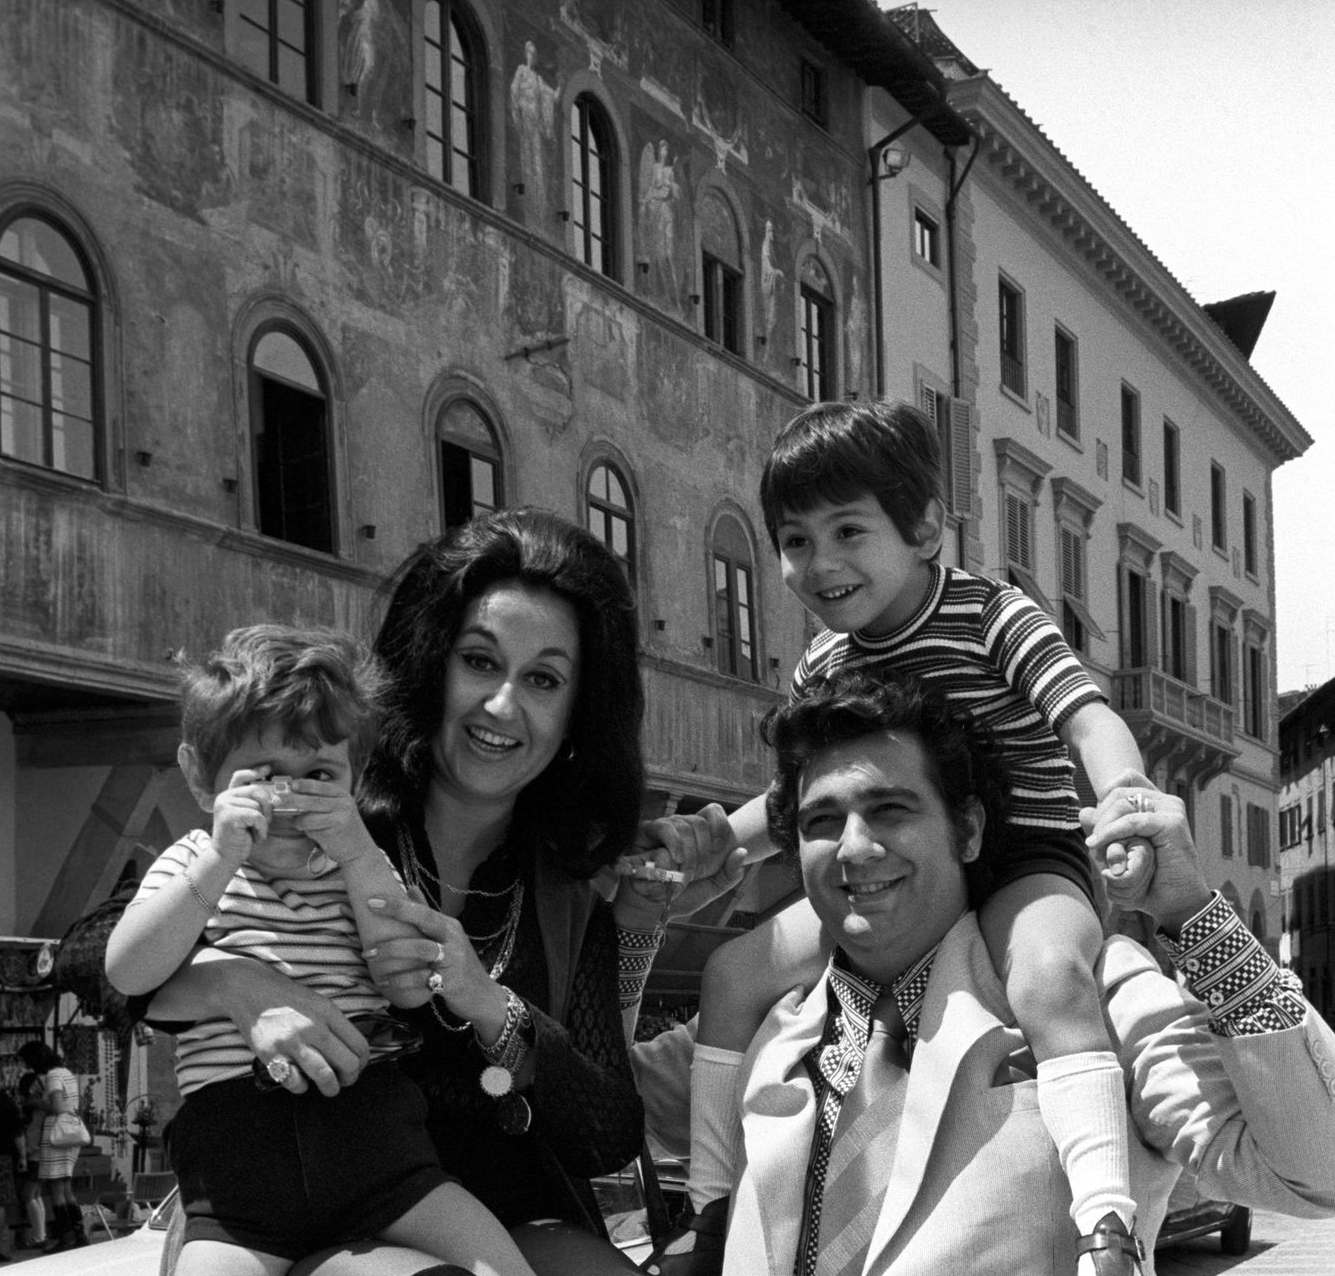 Mexican soprano Marta Ornelas holding her son Alvaro Domingo with a toy camera in the hands in front of Palazzo dell'Antella on piazza Santa Croce. Beside her, her Spanish husband and tenor Placido Domingo smiling while carrying piggyback their son and Mexican singer Placido Domingo Jr. Florence, 1970s